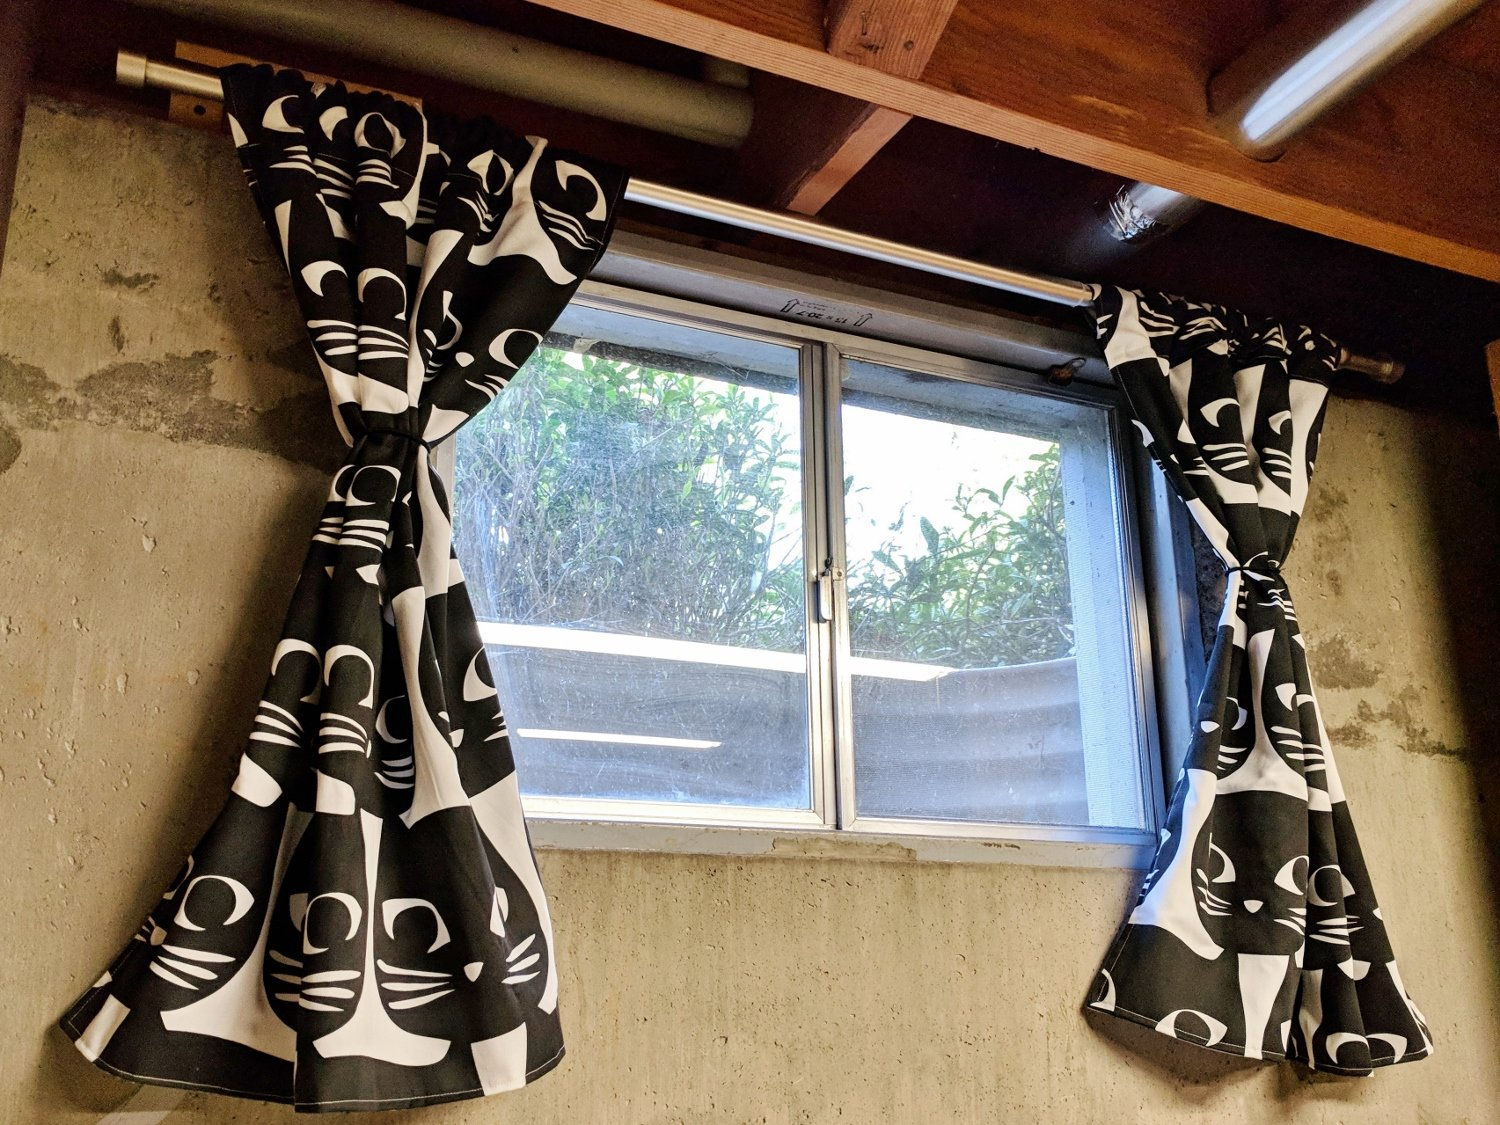 Cat curtains hanging in basement window